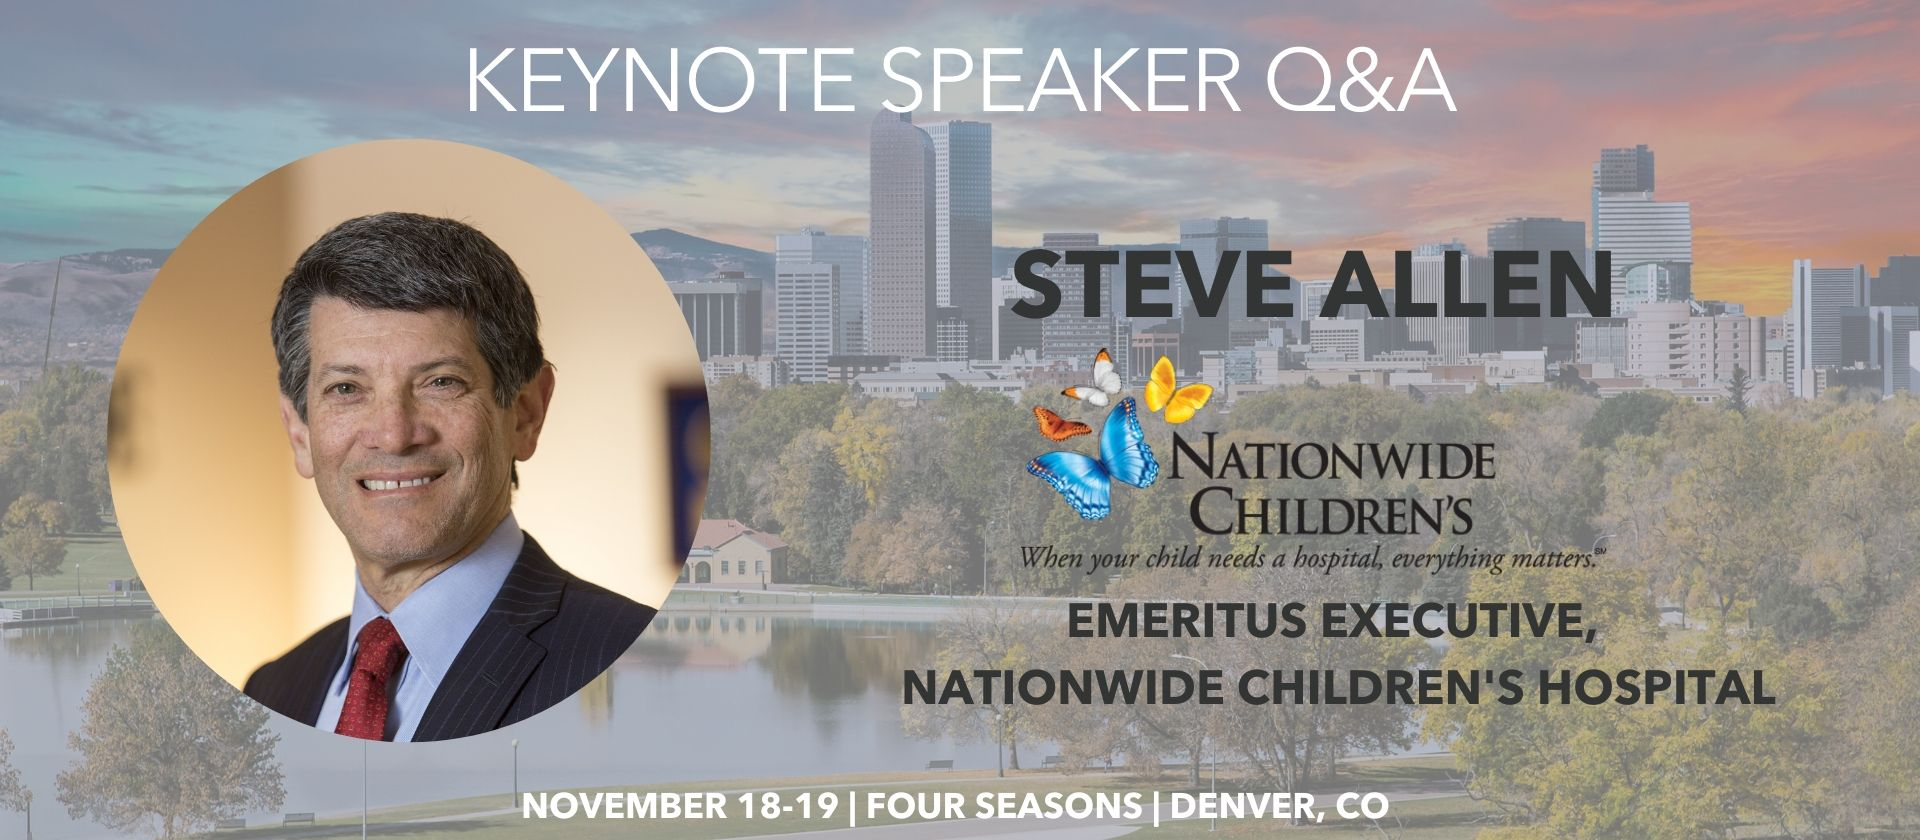 Steve Allen Nationwide Children's Keynote Speaker Q&A